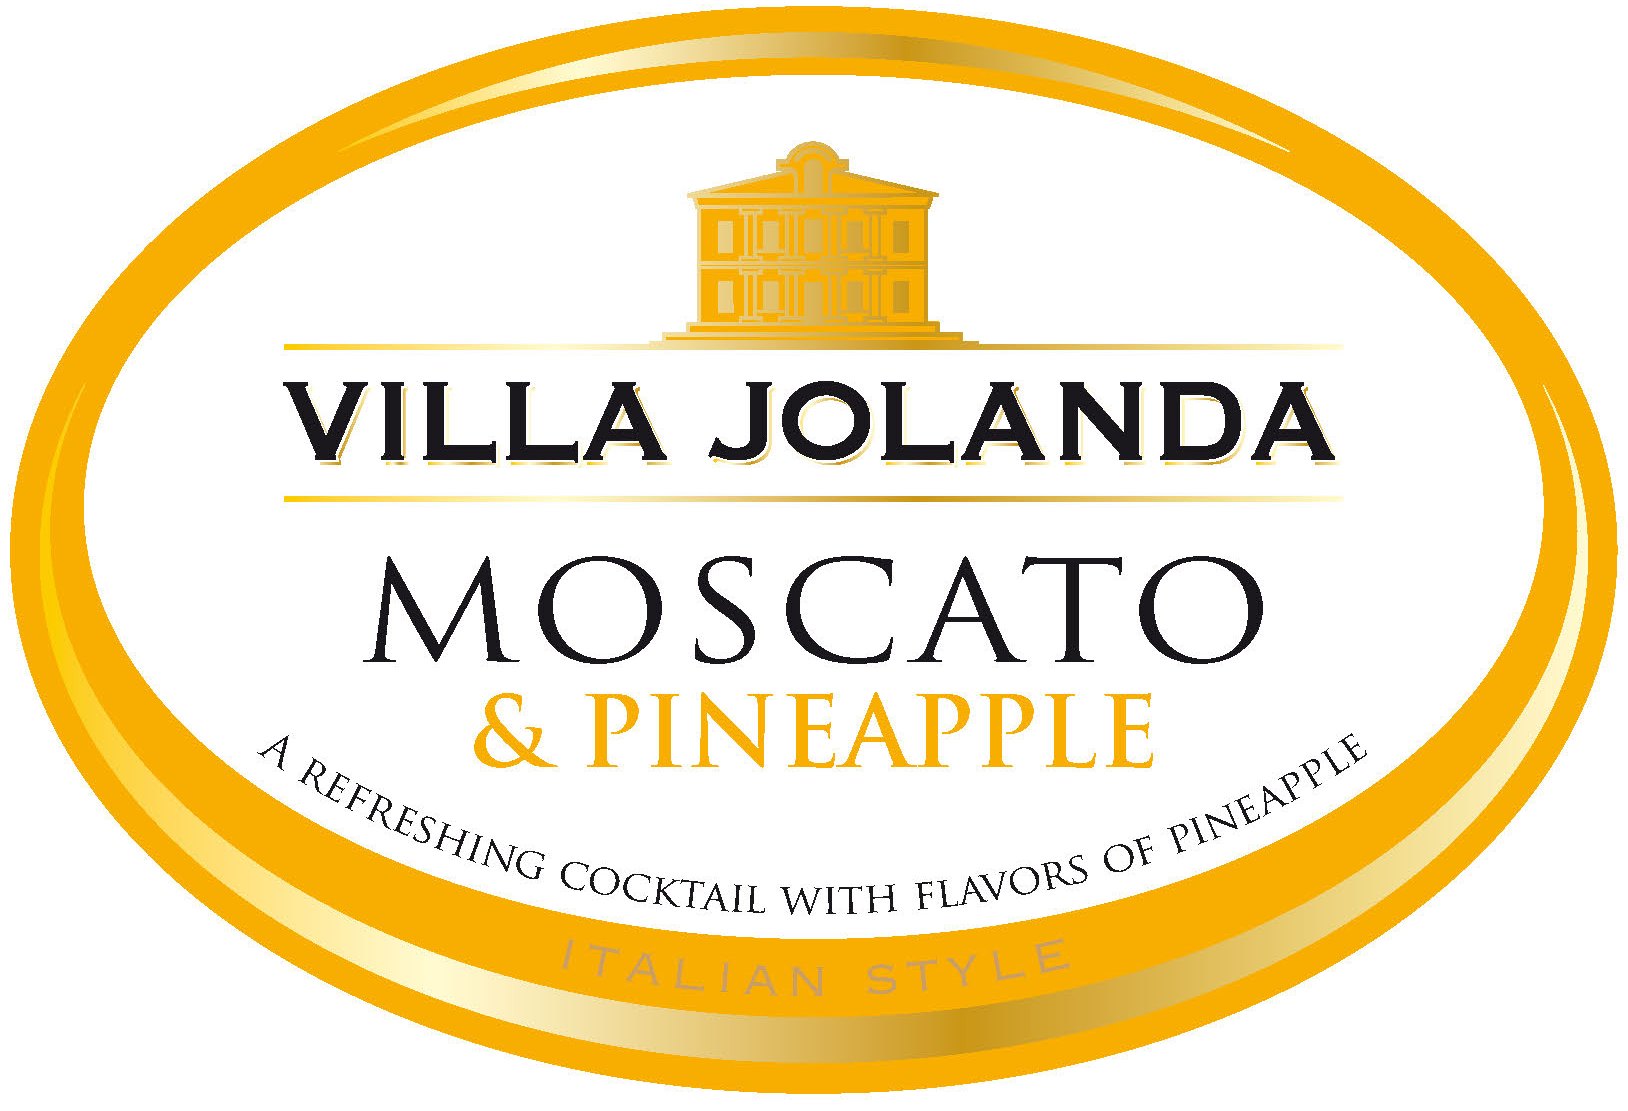 Villa Jolanda - Moscato and Pineapple